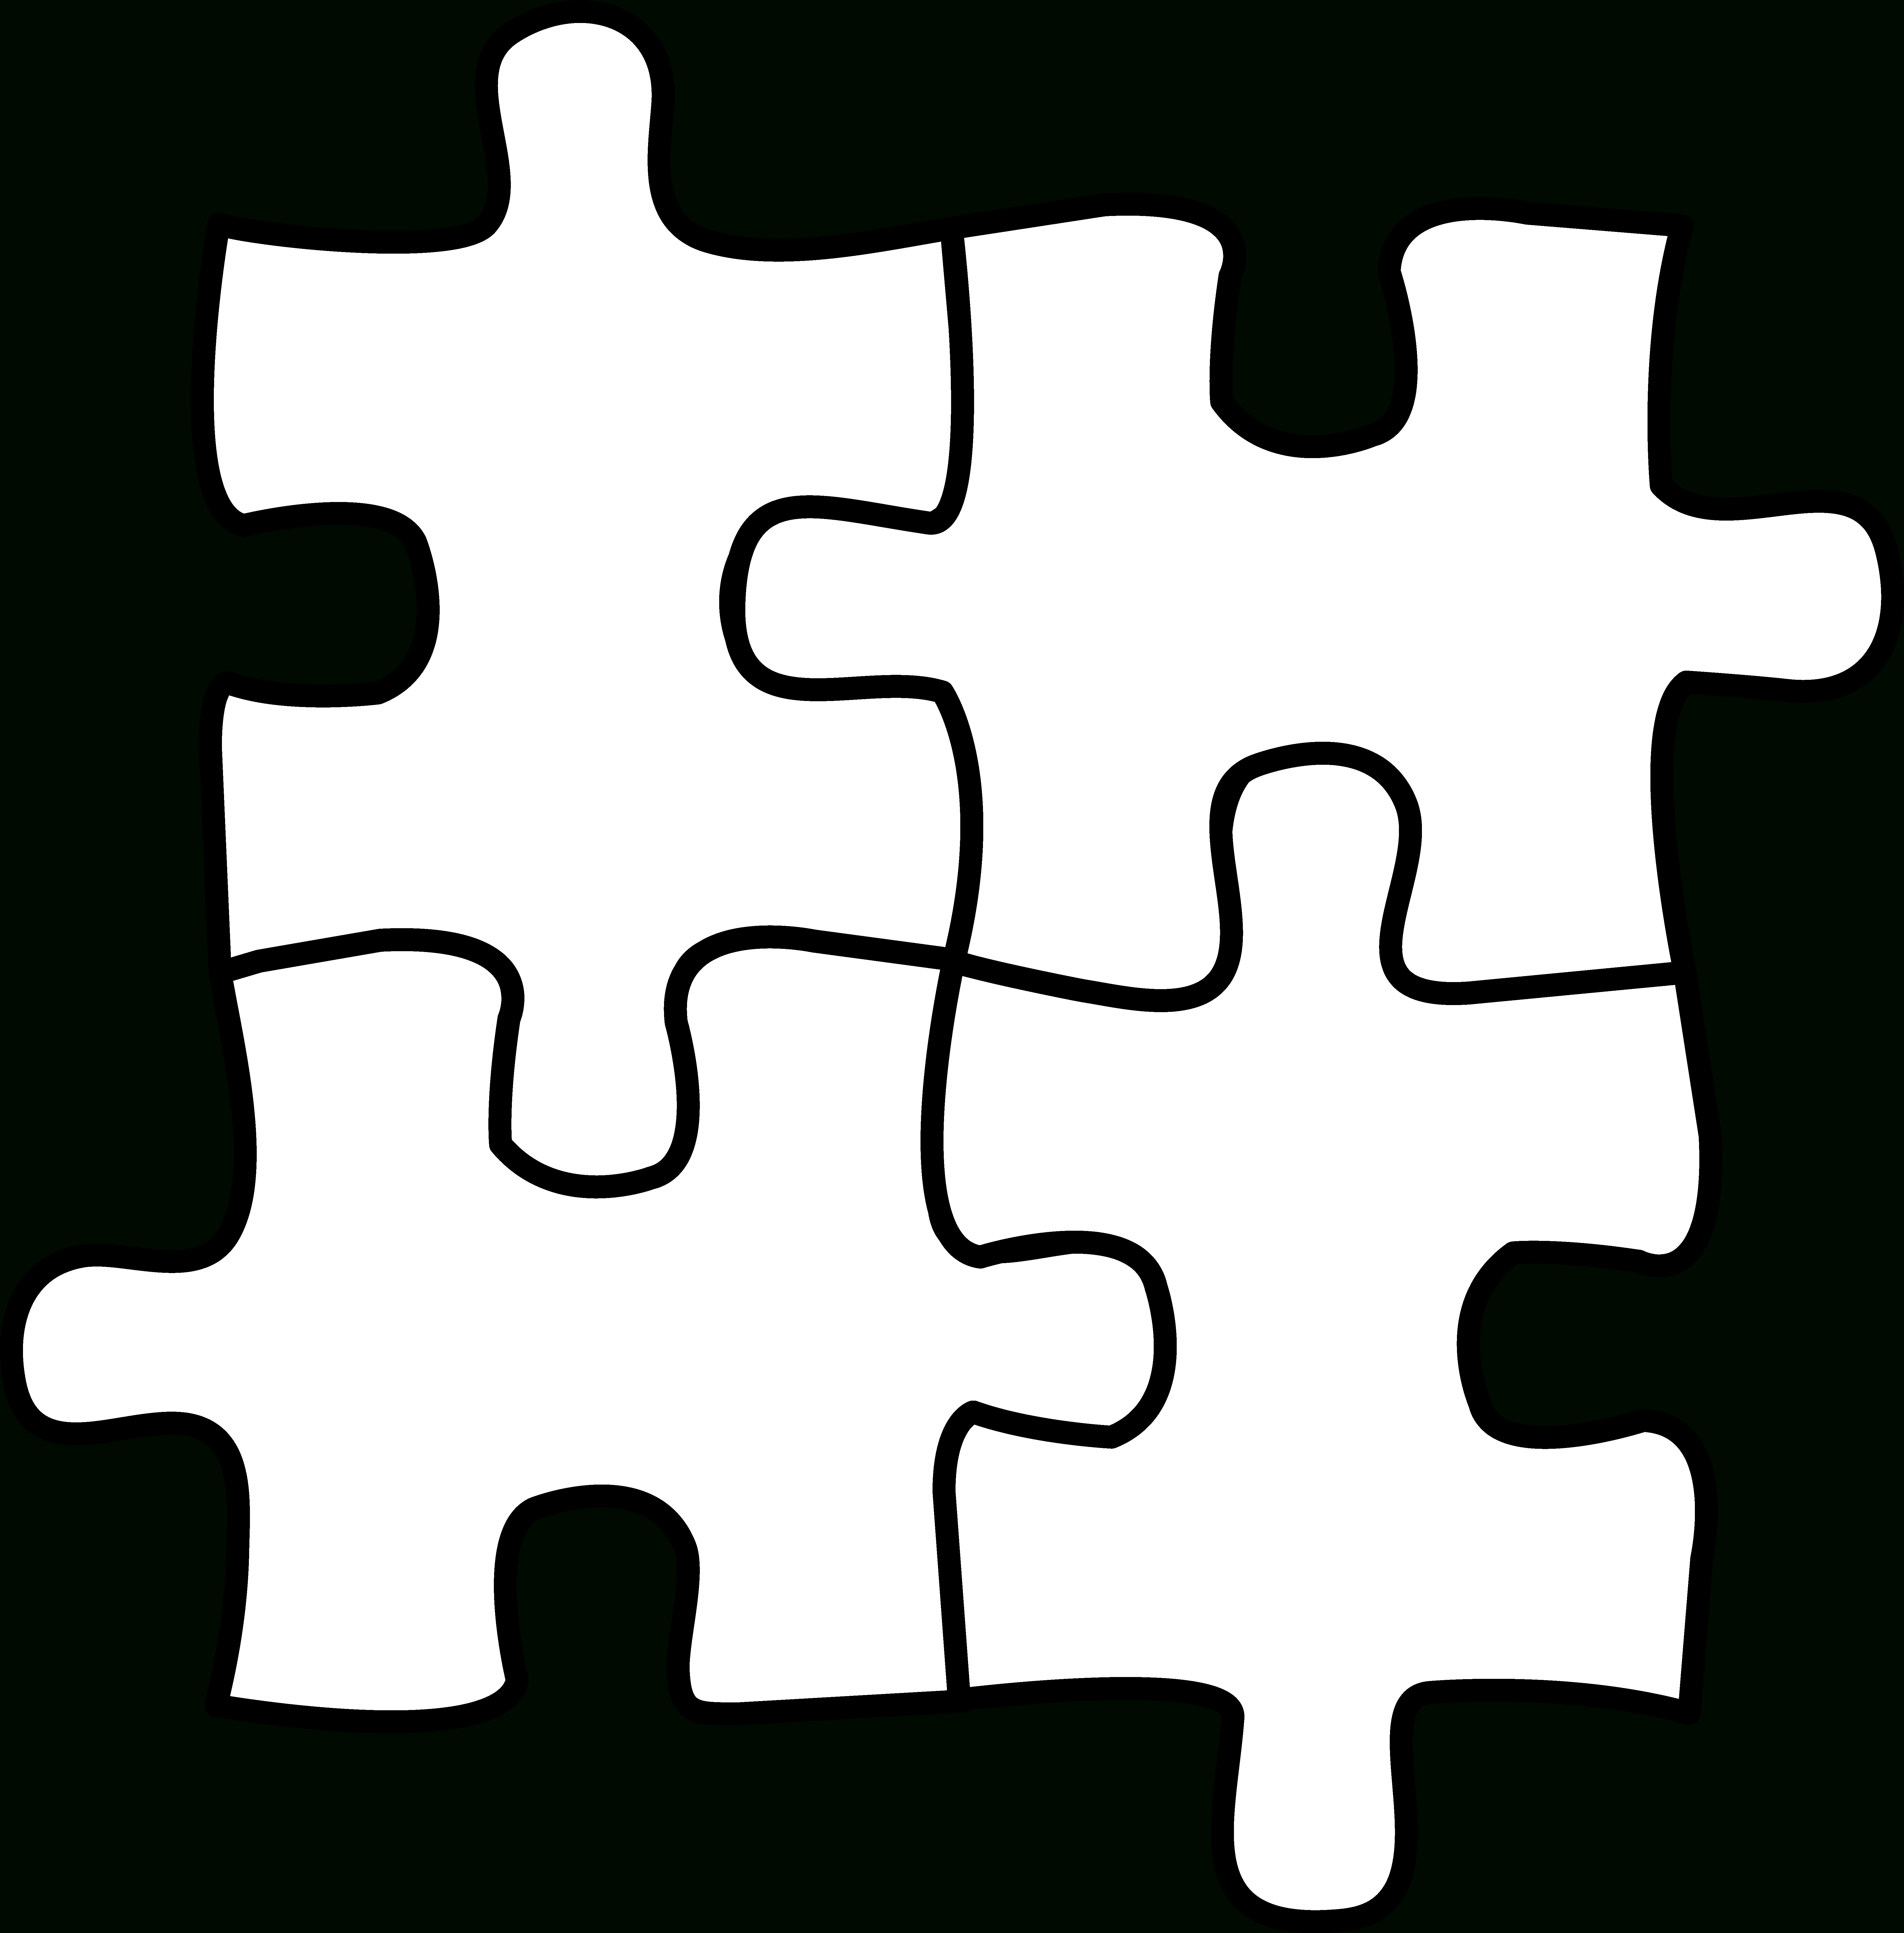 Autism Puzzle Piece Coloring Page - Coloring Home - Printable Colored Puzzle Pieces